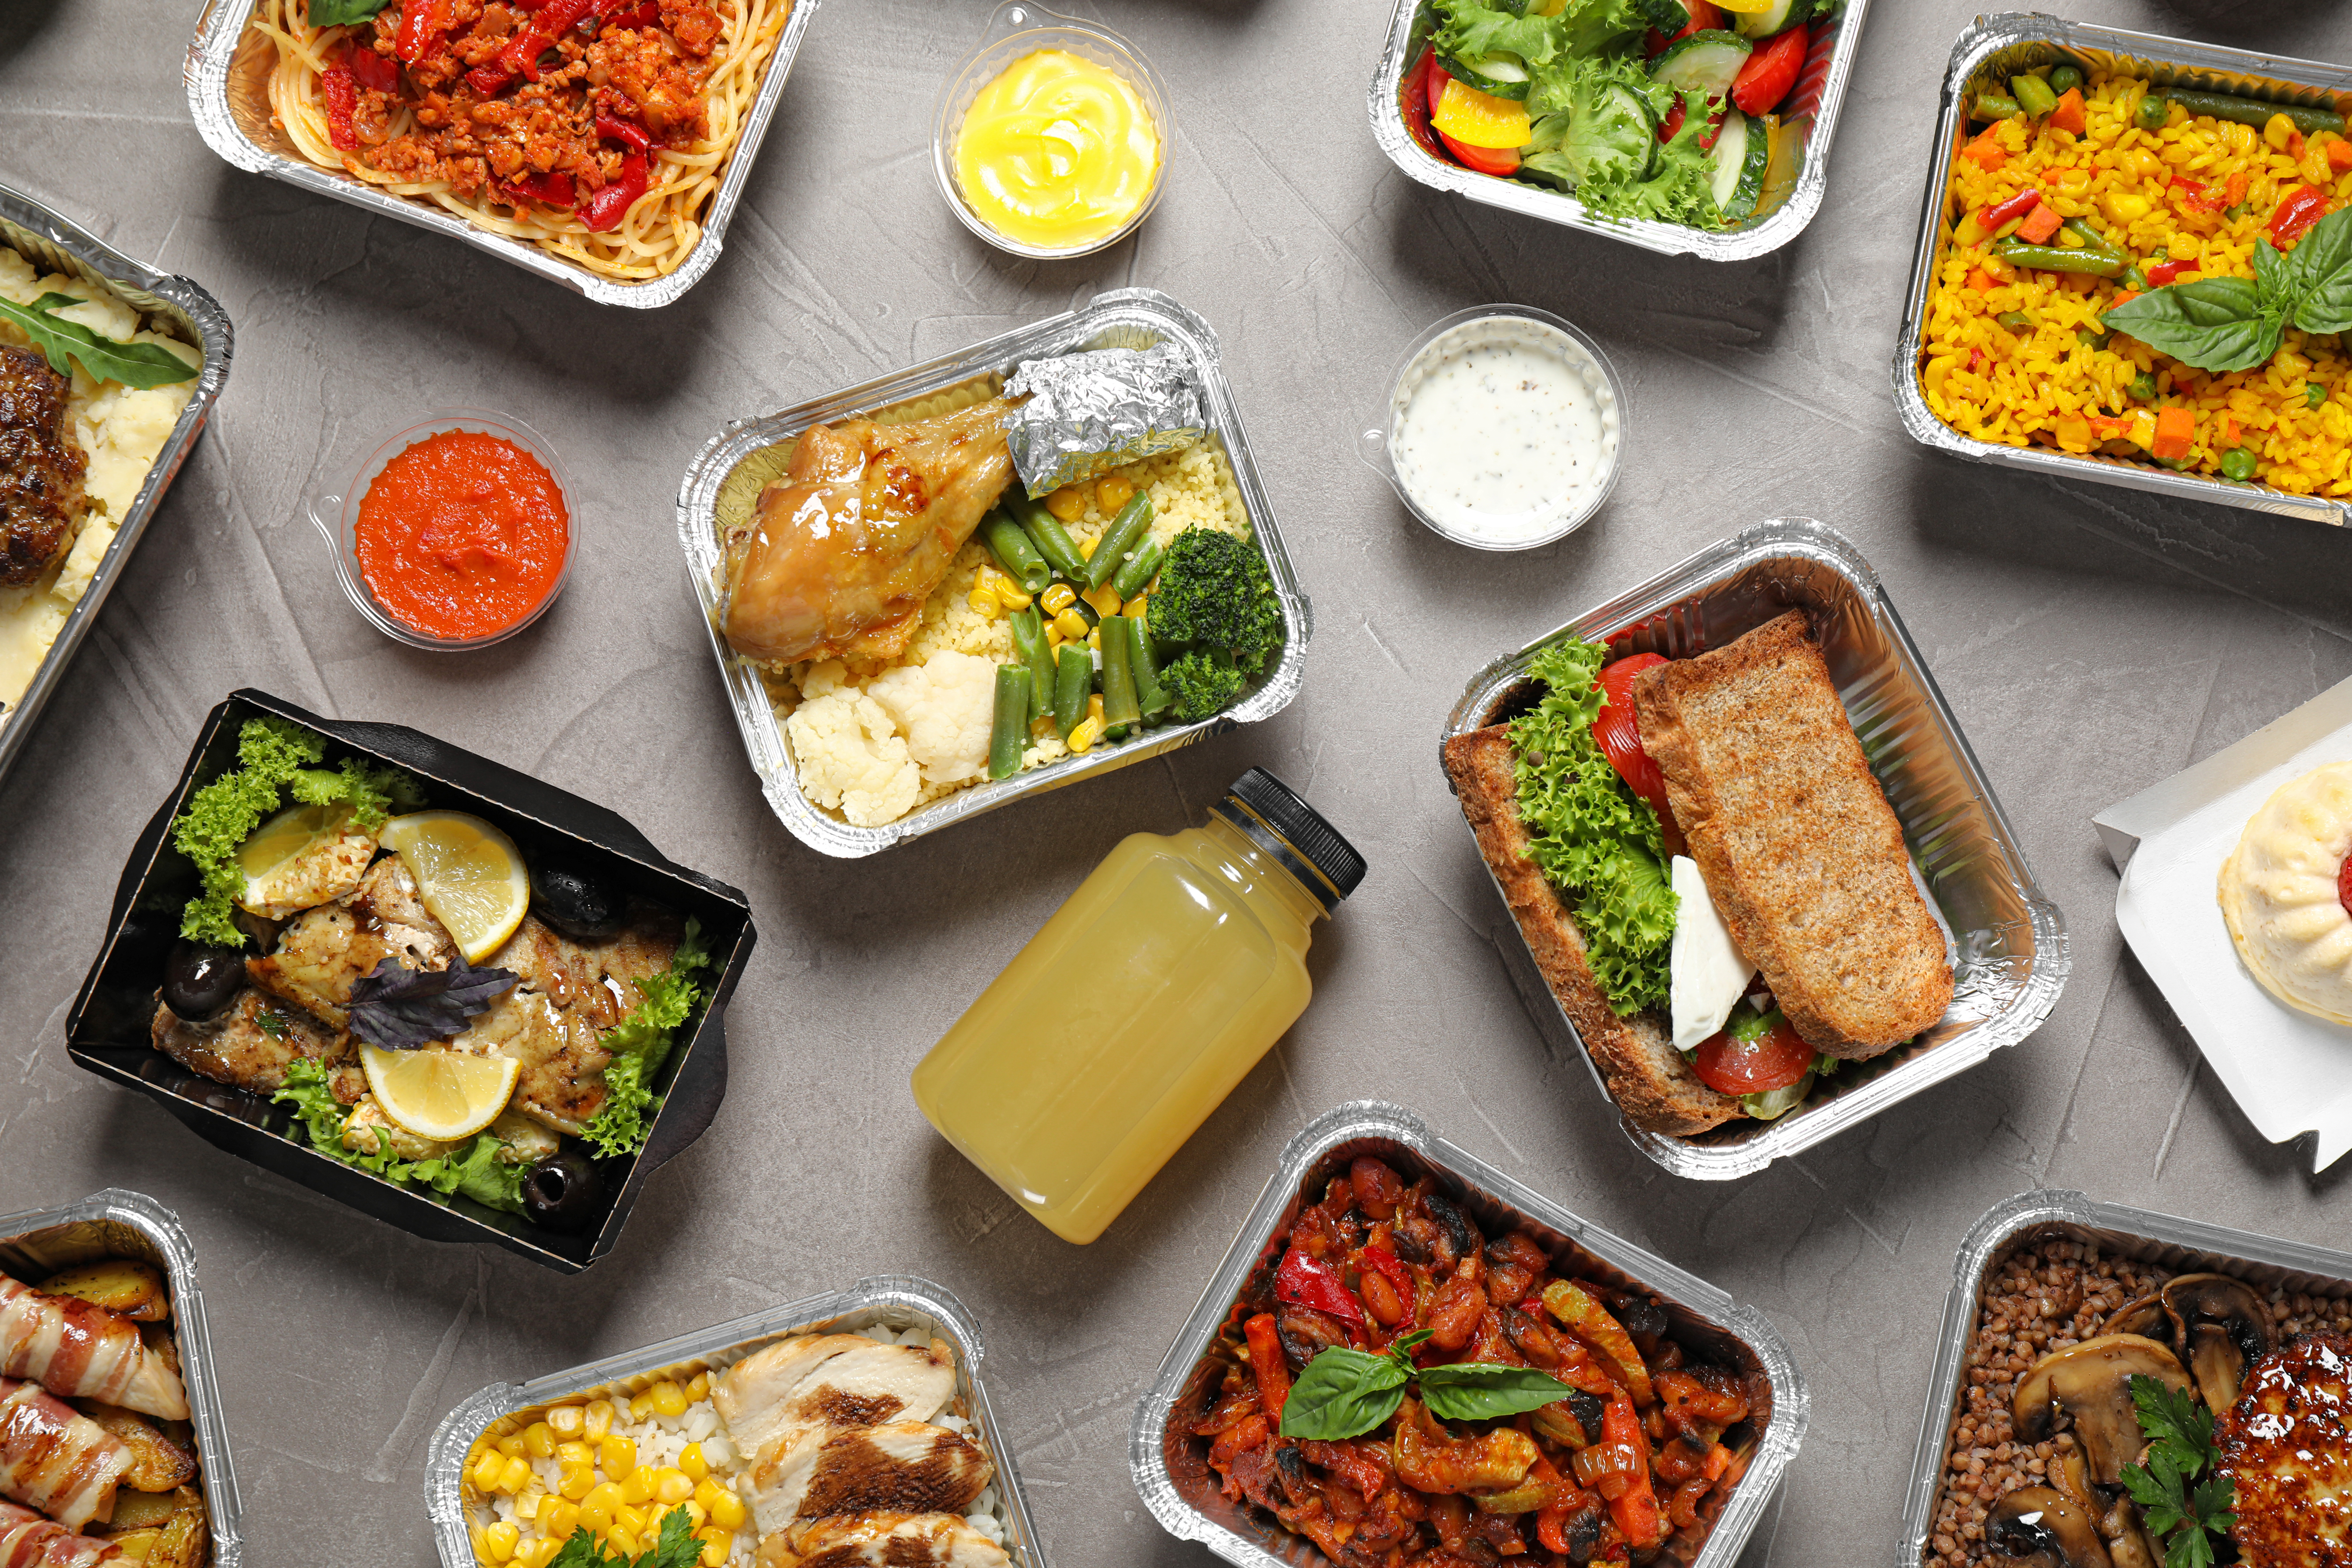 A selection of different kinds of food in a variety of takeout containers, with sides of sauce.